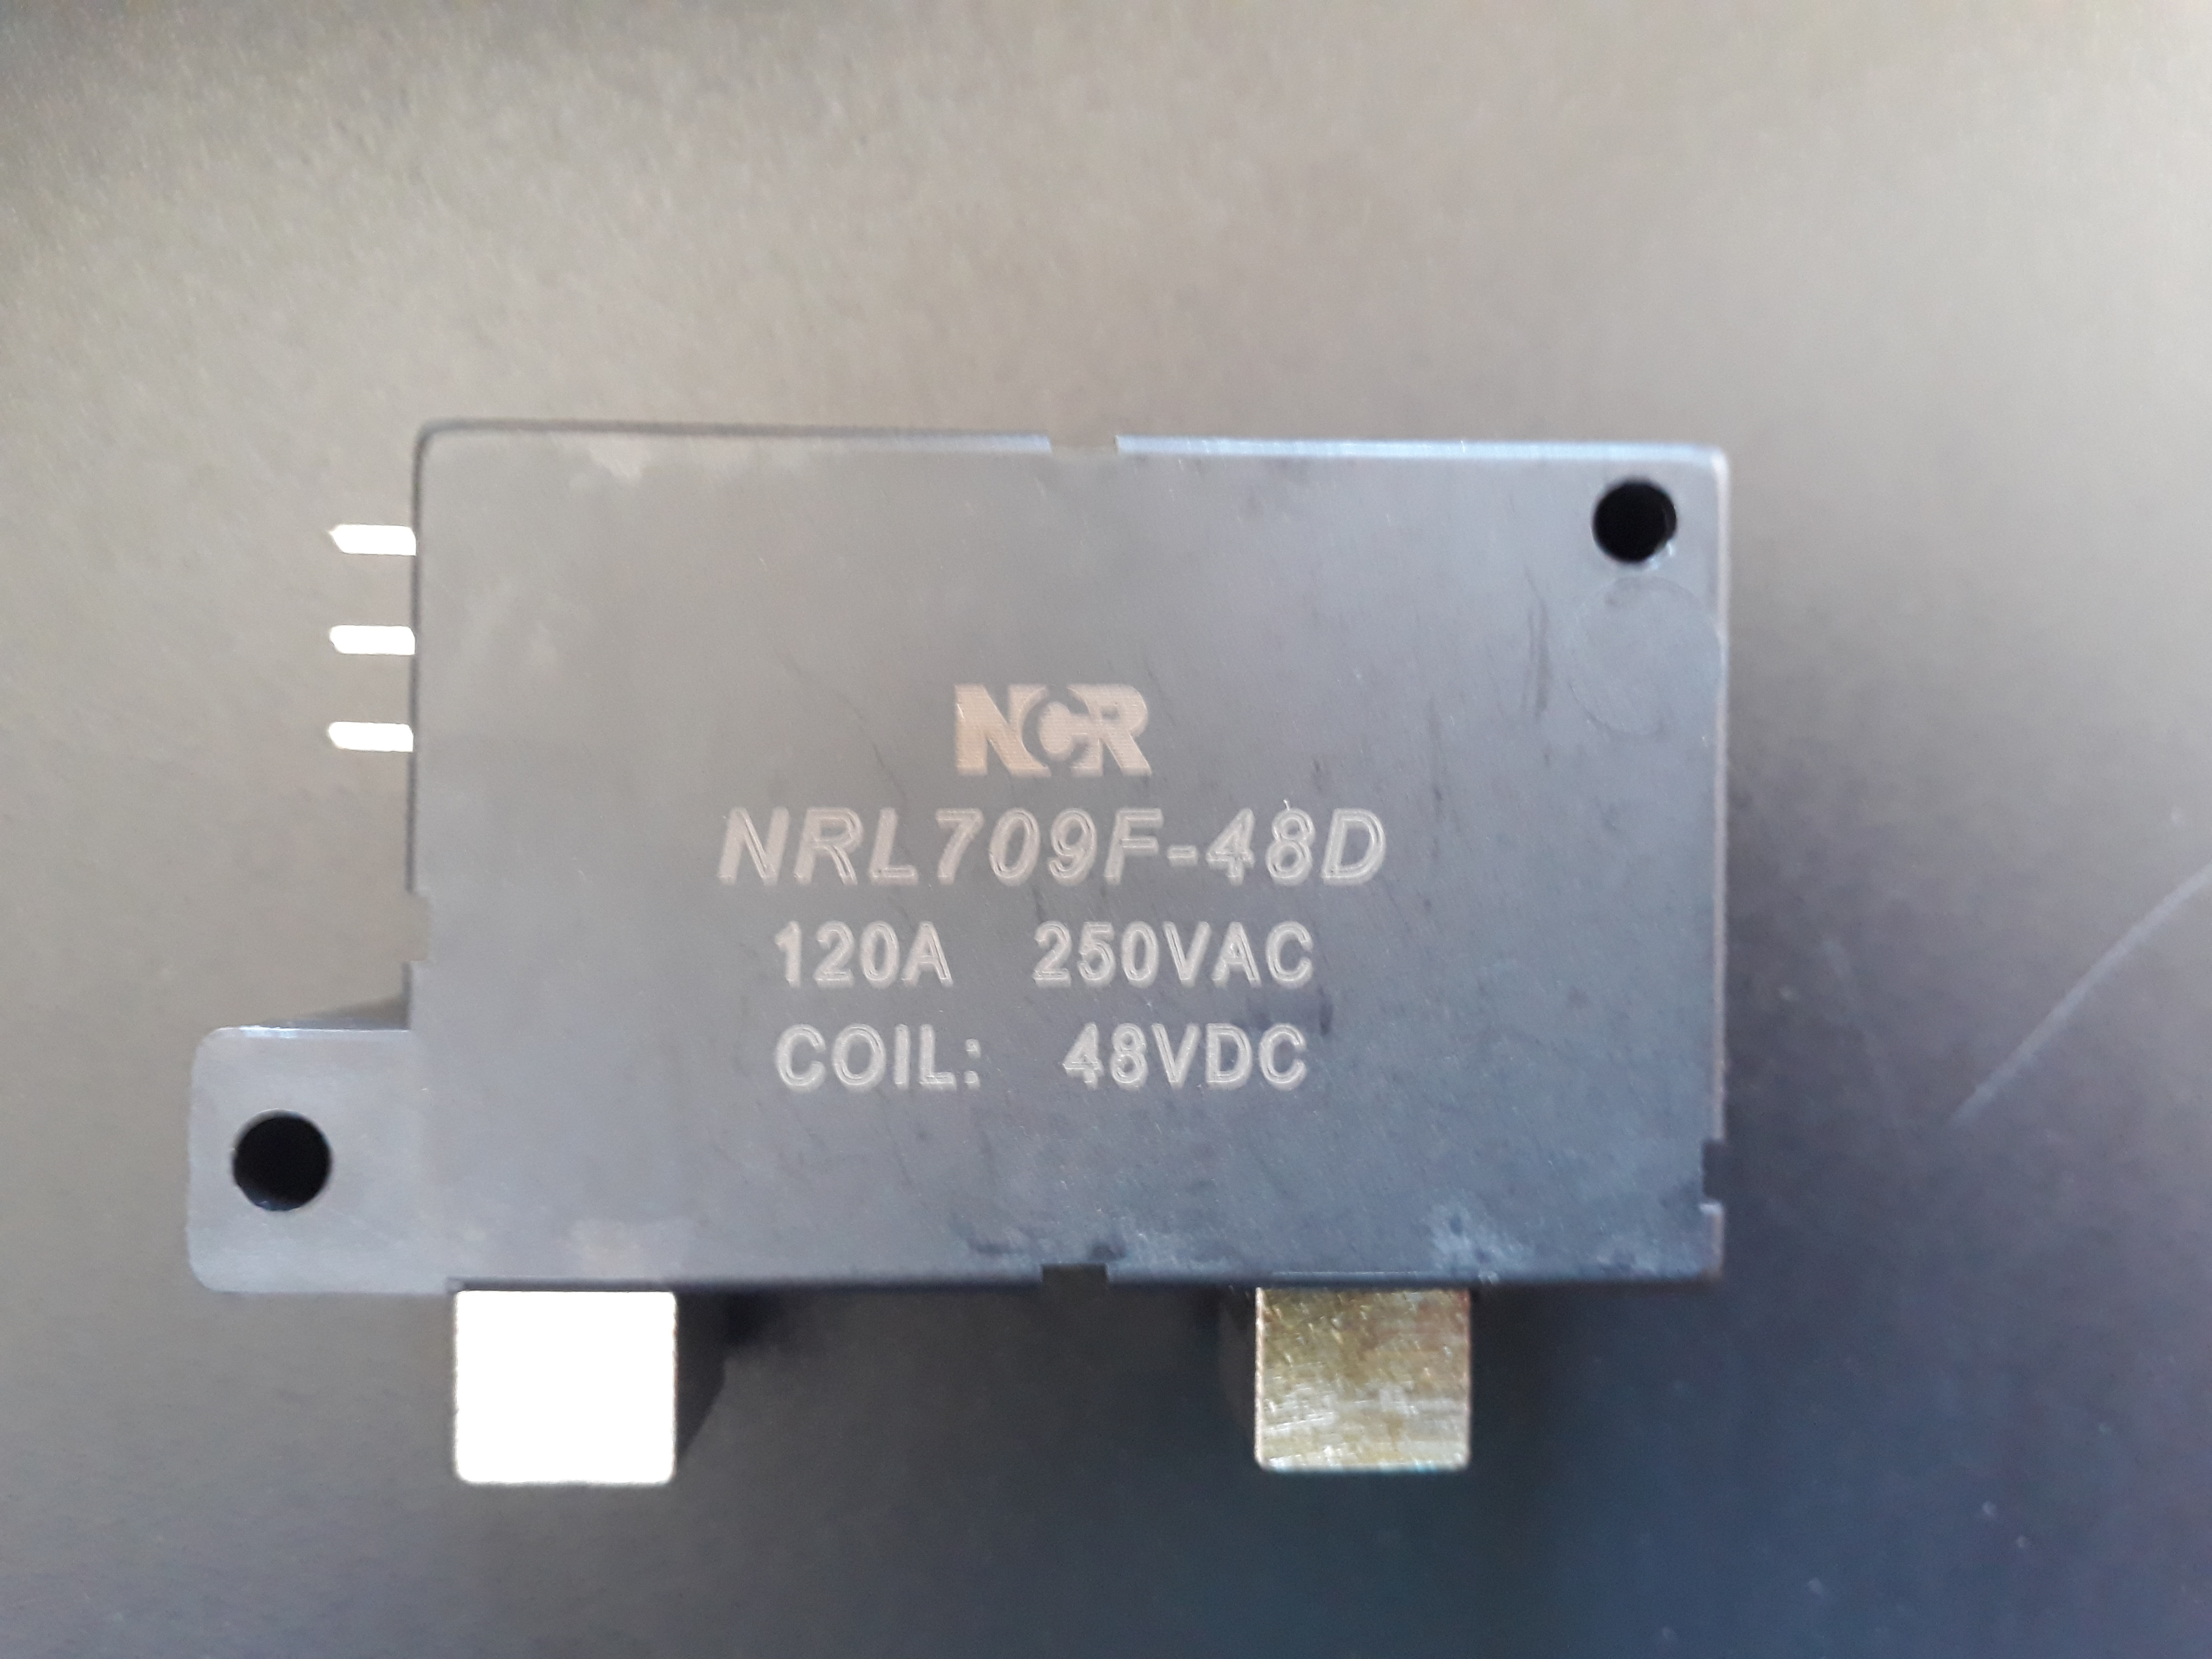 Latching relay 120A /250VAC cívka 48Vdc